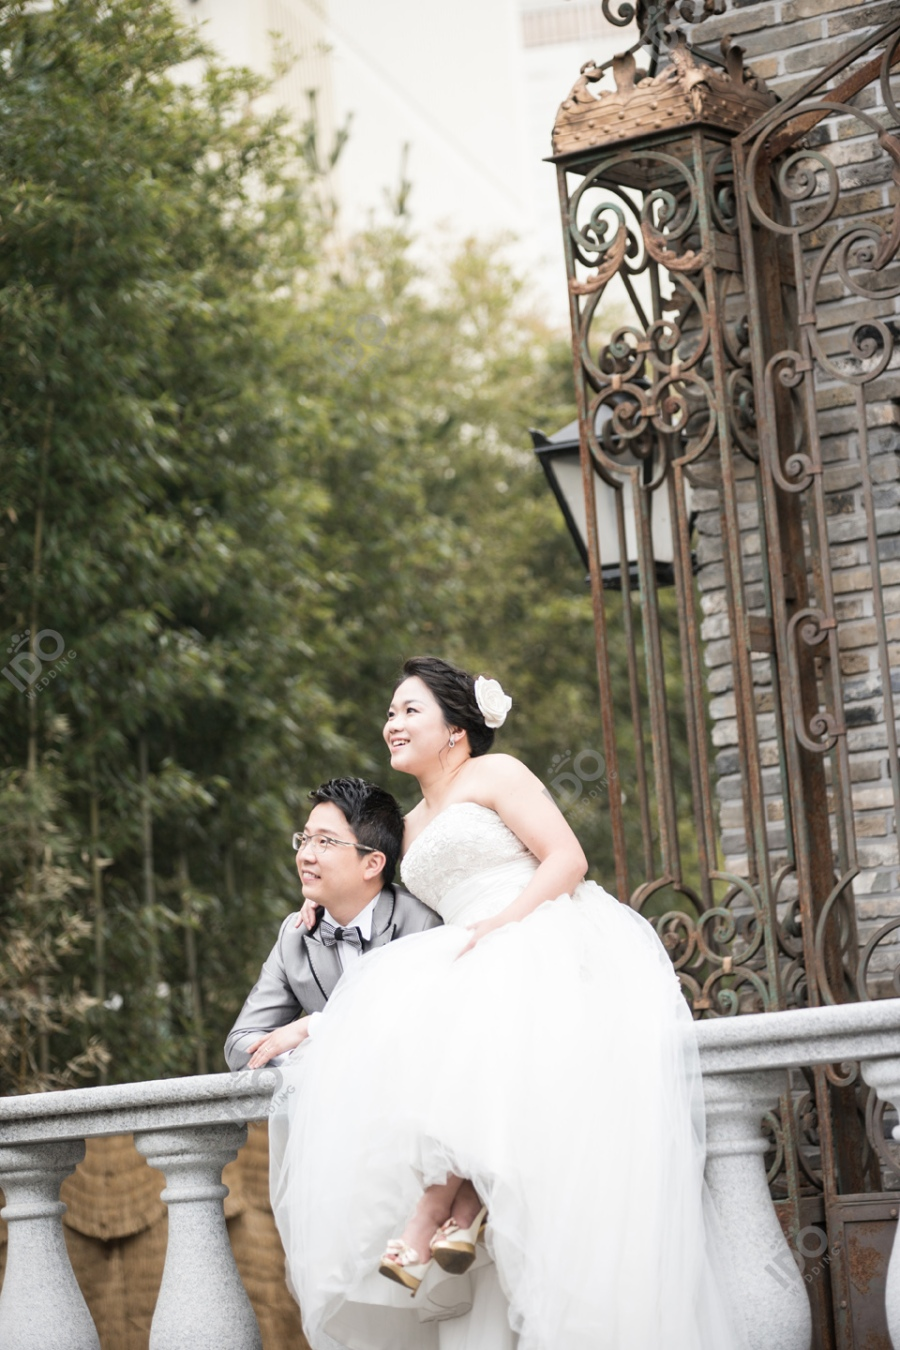 koreanweddingphoto_idowedding6770